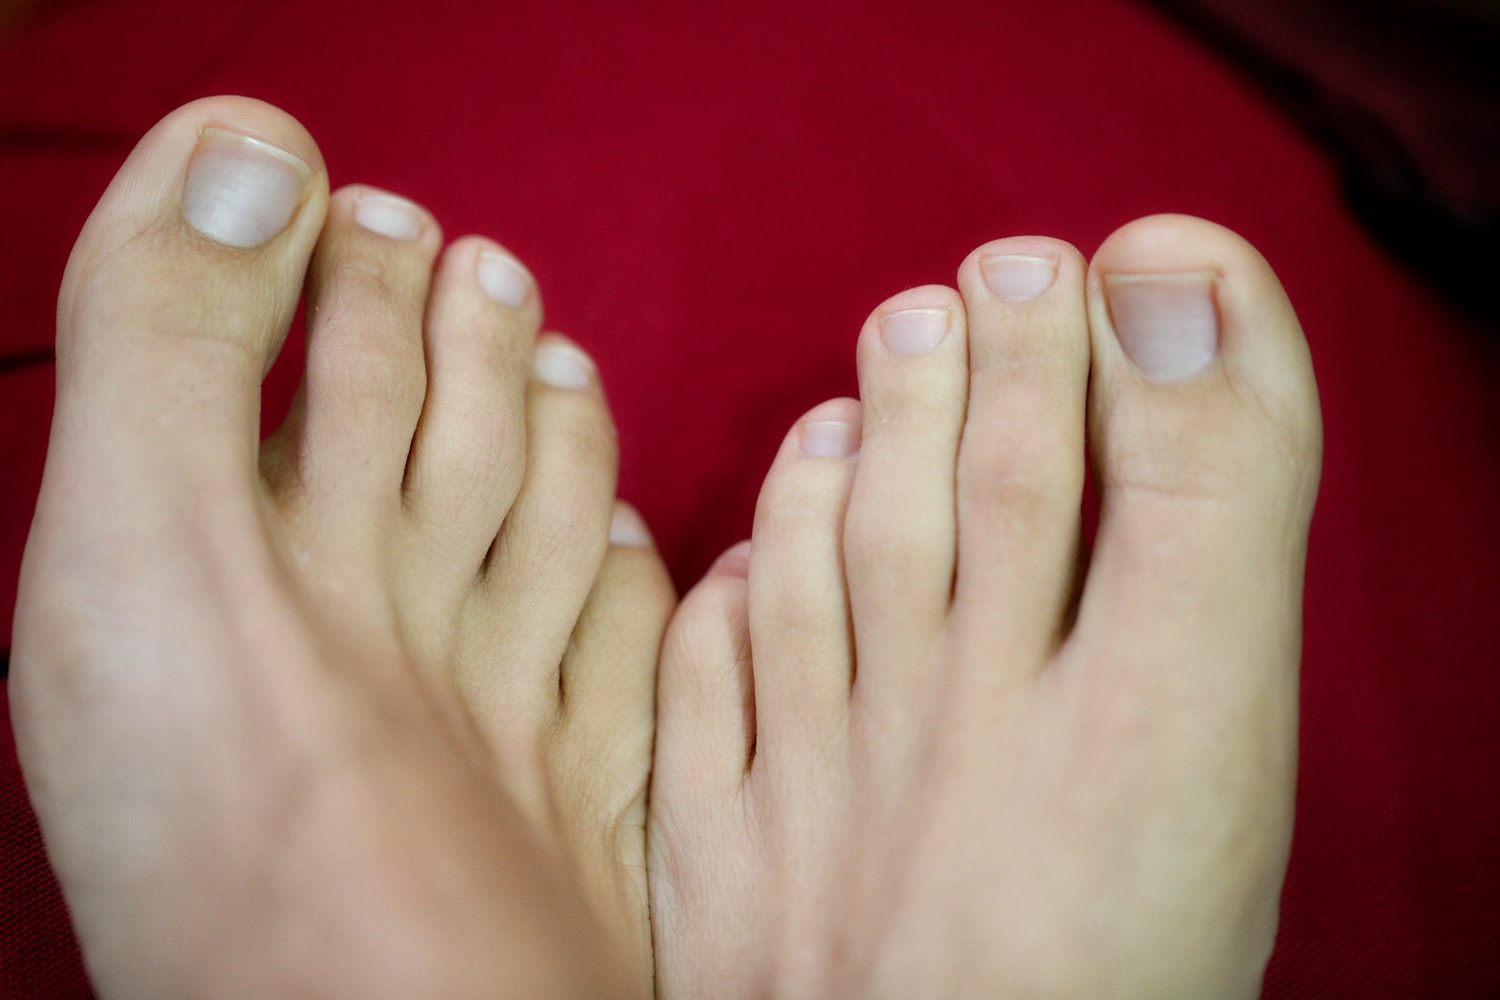 Photo of a person's feet